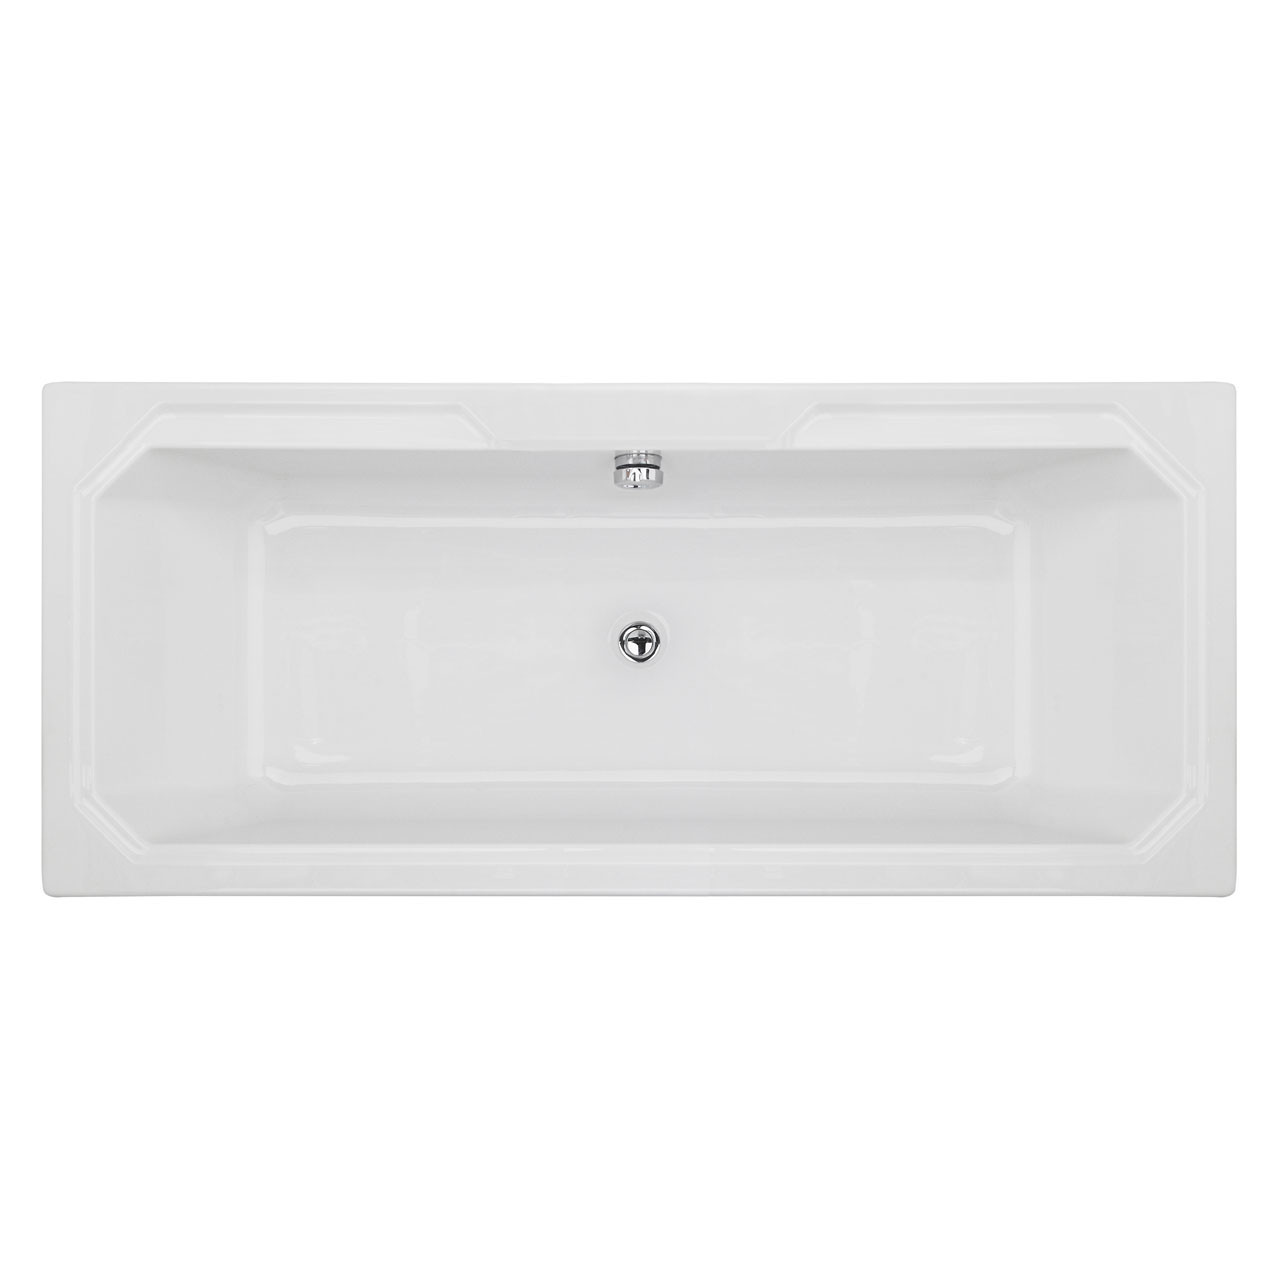 Nuie Ascott 1800mm x 800mm Art Deco Single Ended Bath - NLB114